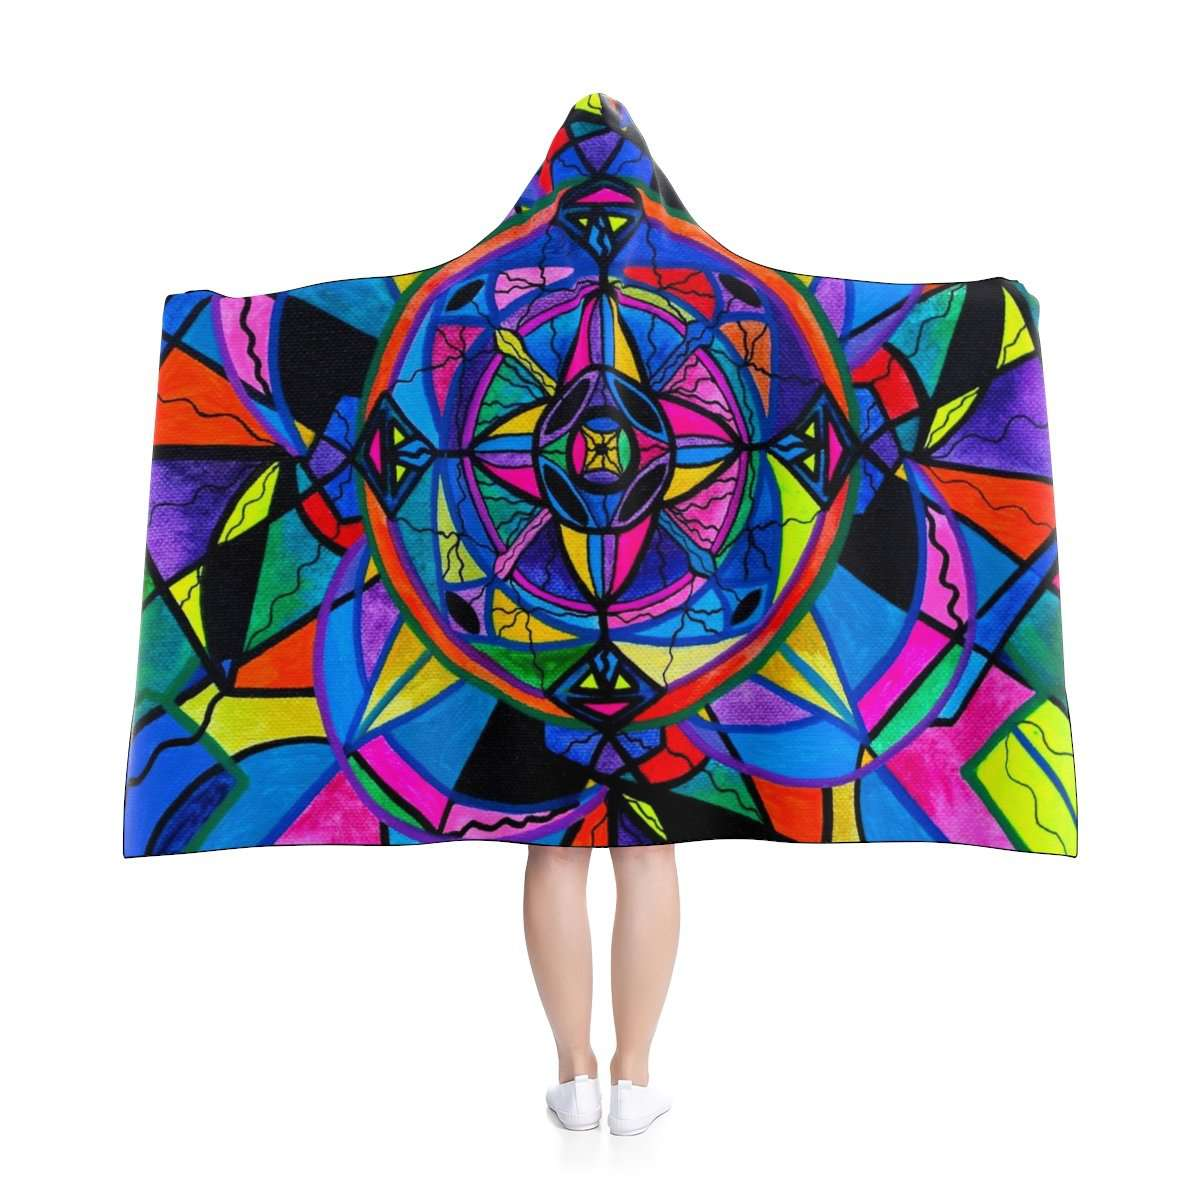 Activating Potential - Hooded Blanket